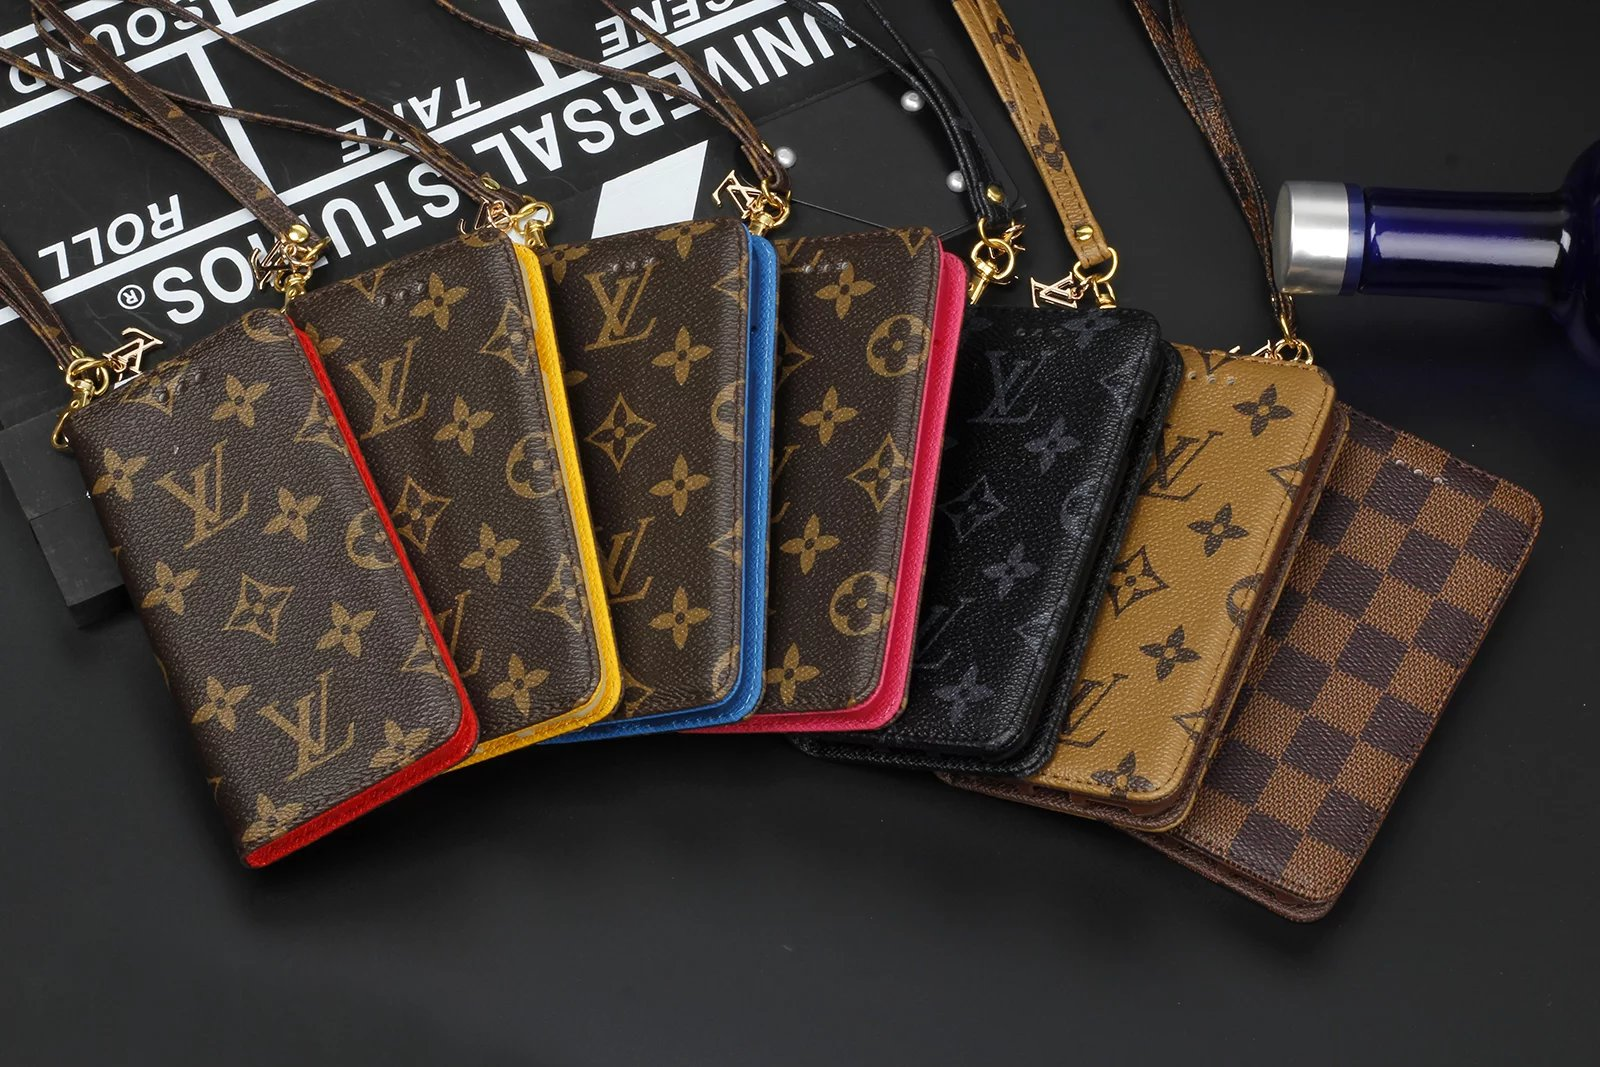 iphone case erstellen mini iphone hülle Louis Vuitton iphone6s plus hülle iphone 6s Plus hülle ca6s handy schutzhülle 6slber machen schale iphone 6s Plus stylische iphone 6s Plus hüllen iphone 6s Plus klapphülle neuheiten iphone 6